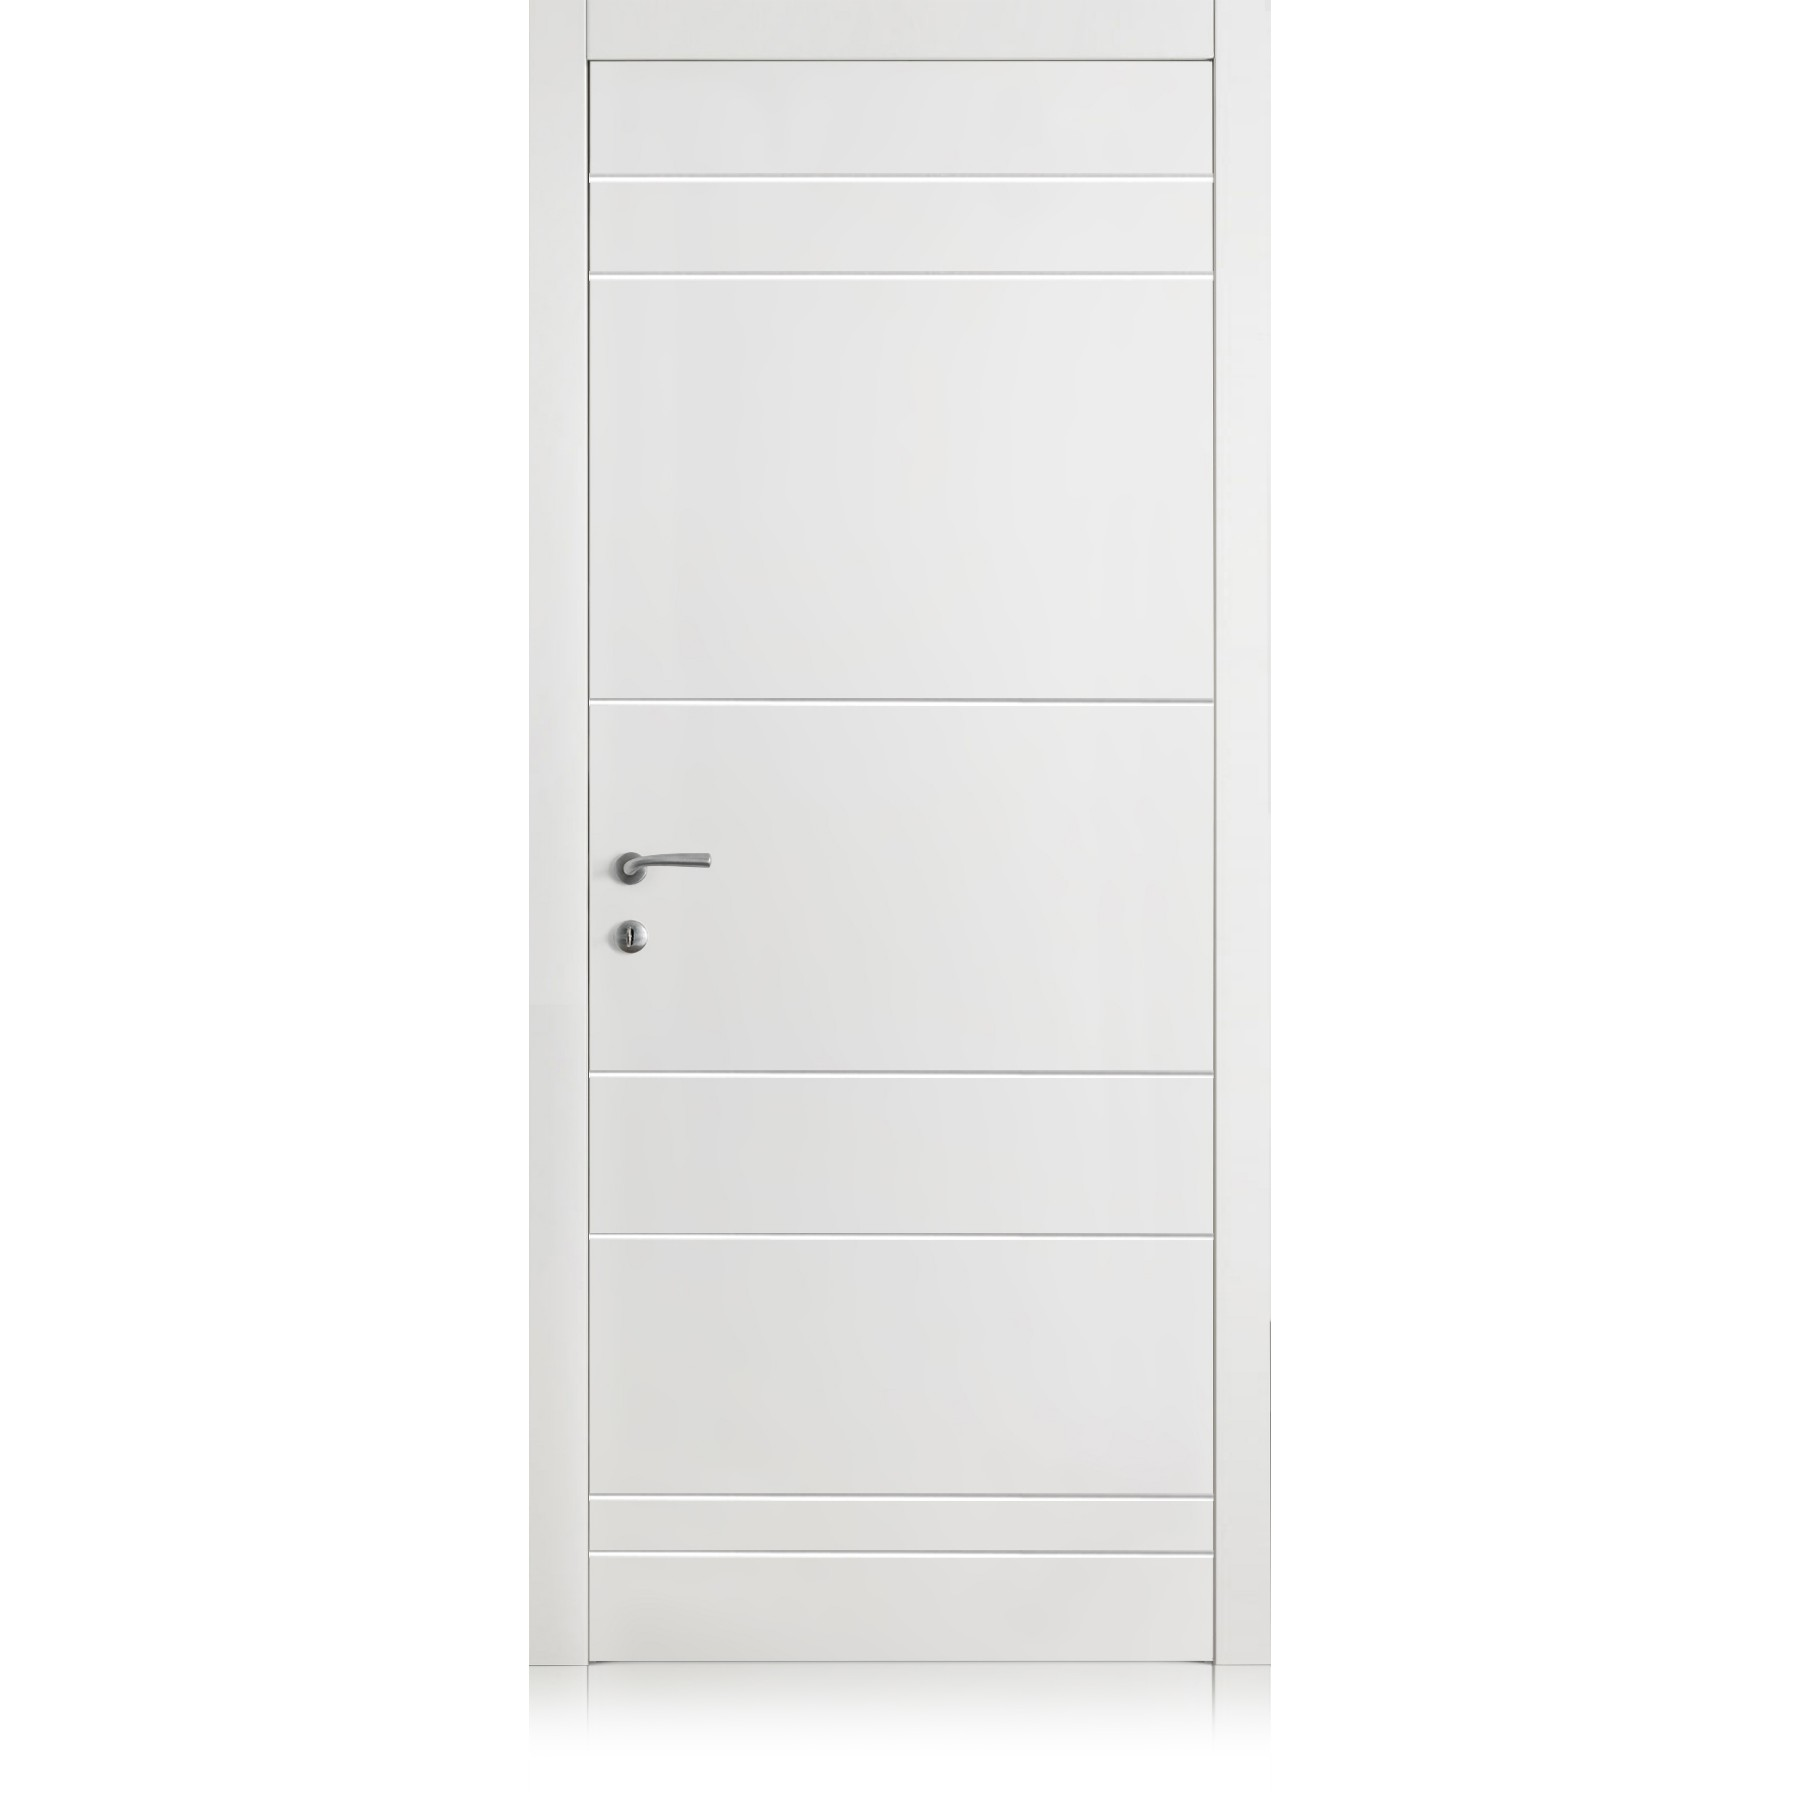 Yncisa Tratto bianco optical door